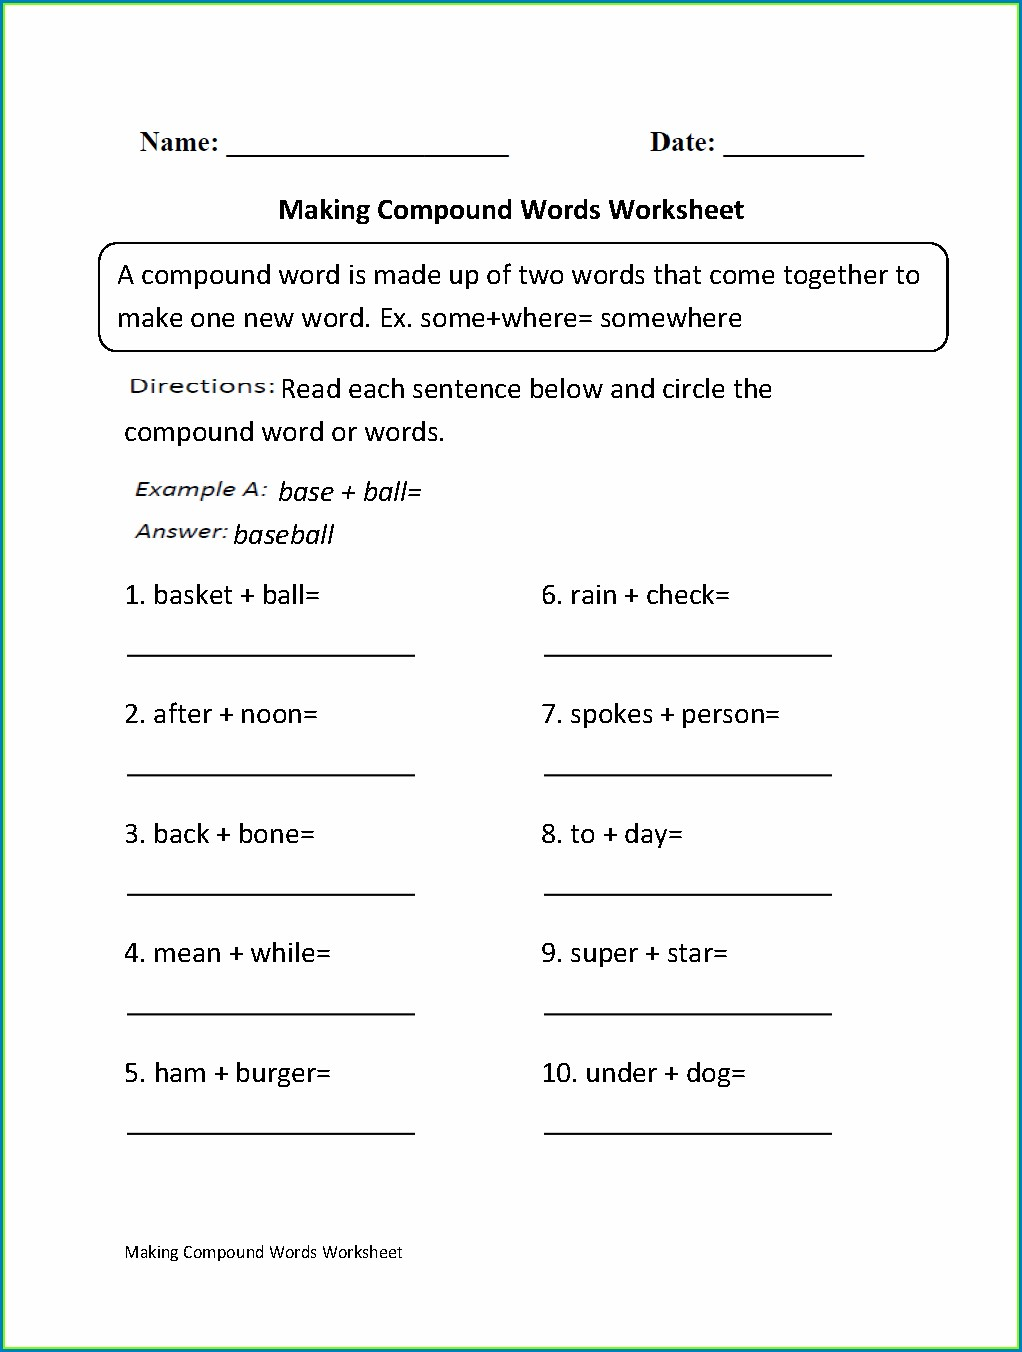 Compound Words Worksheet 4th Grade Pdf